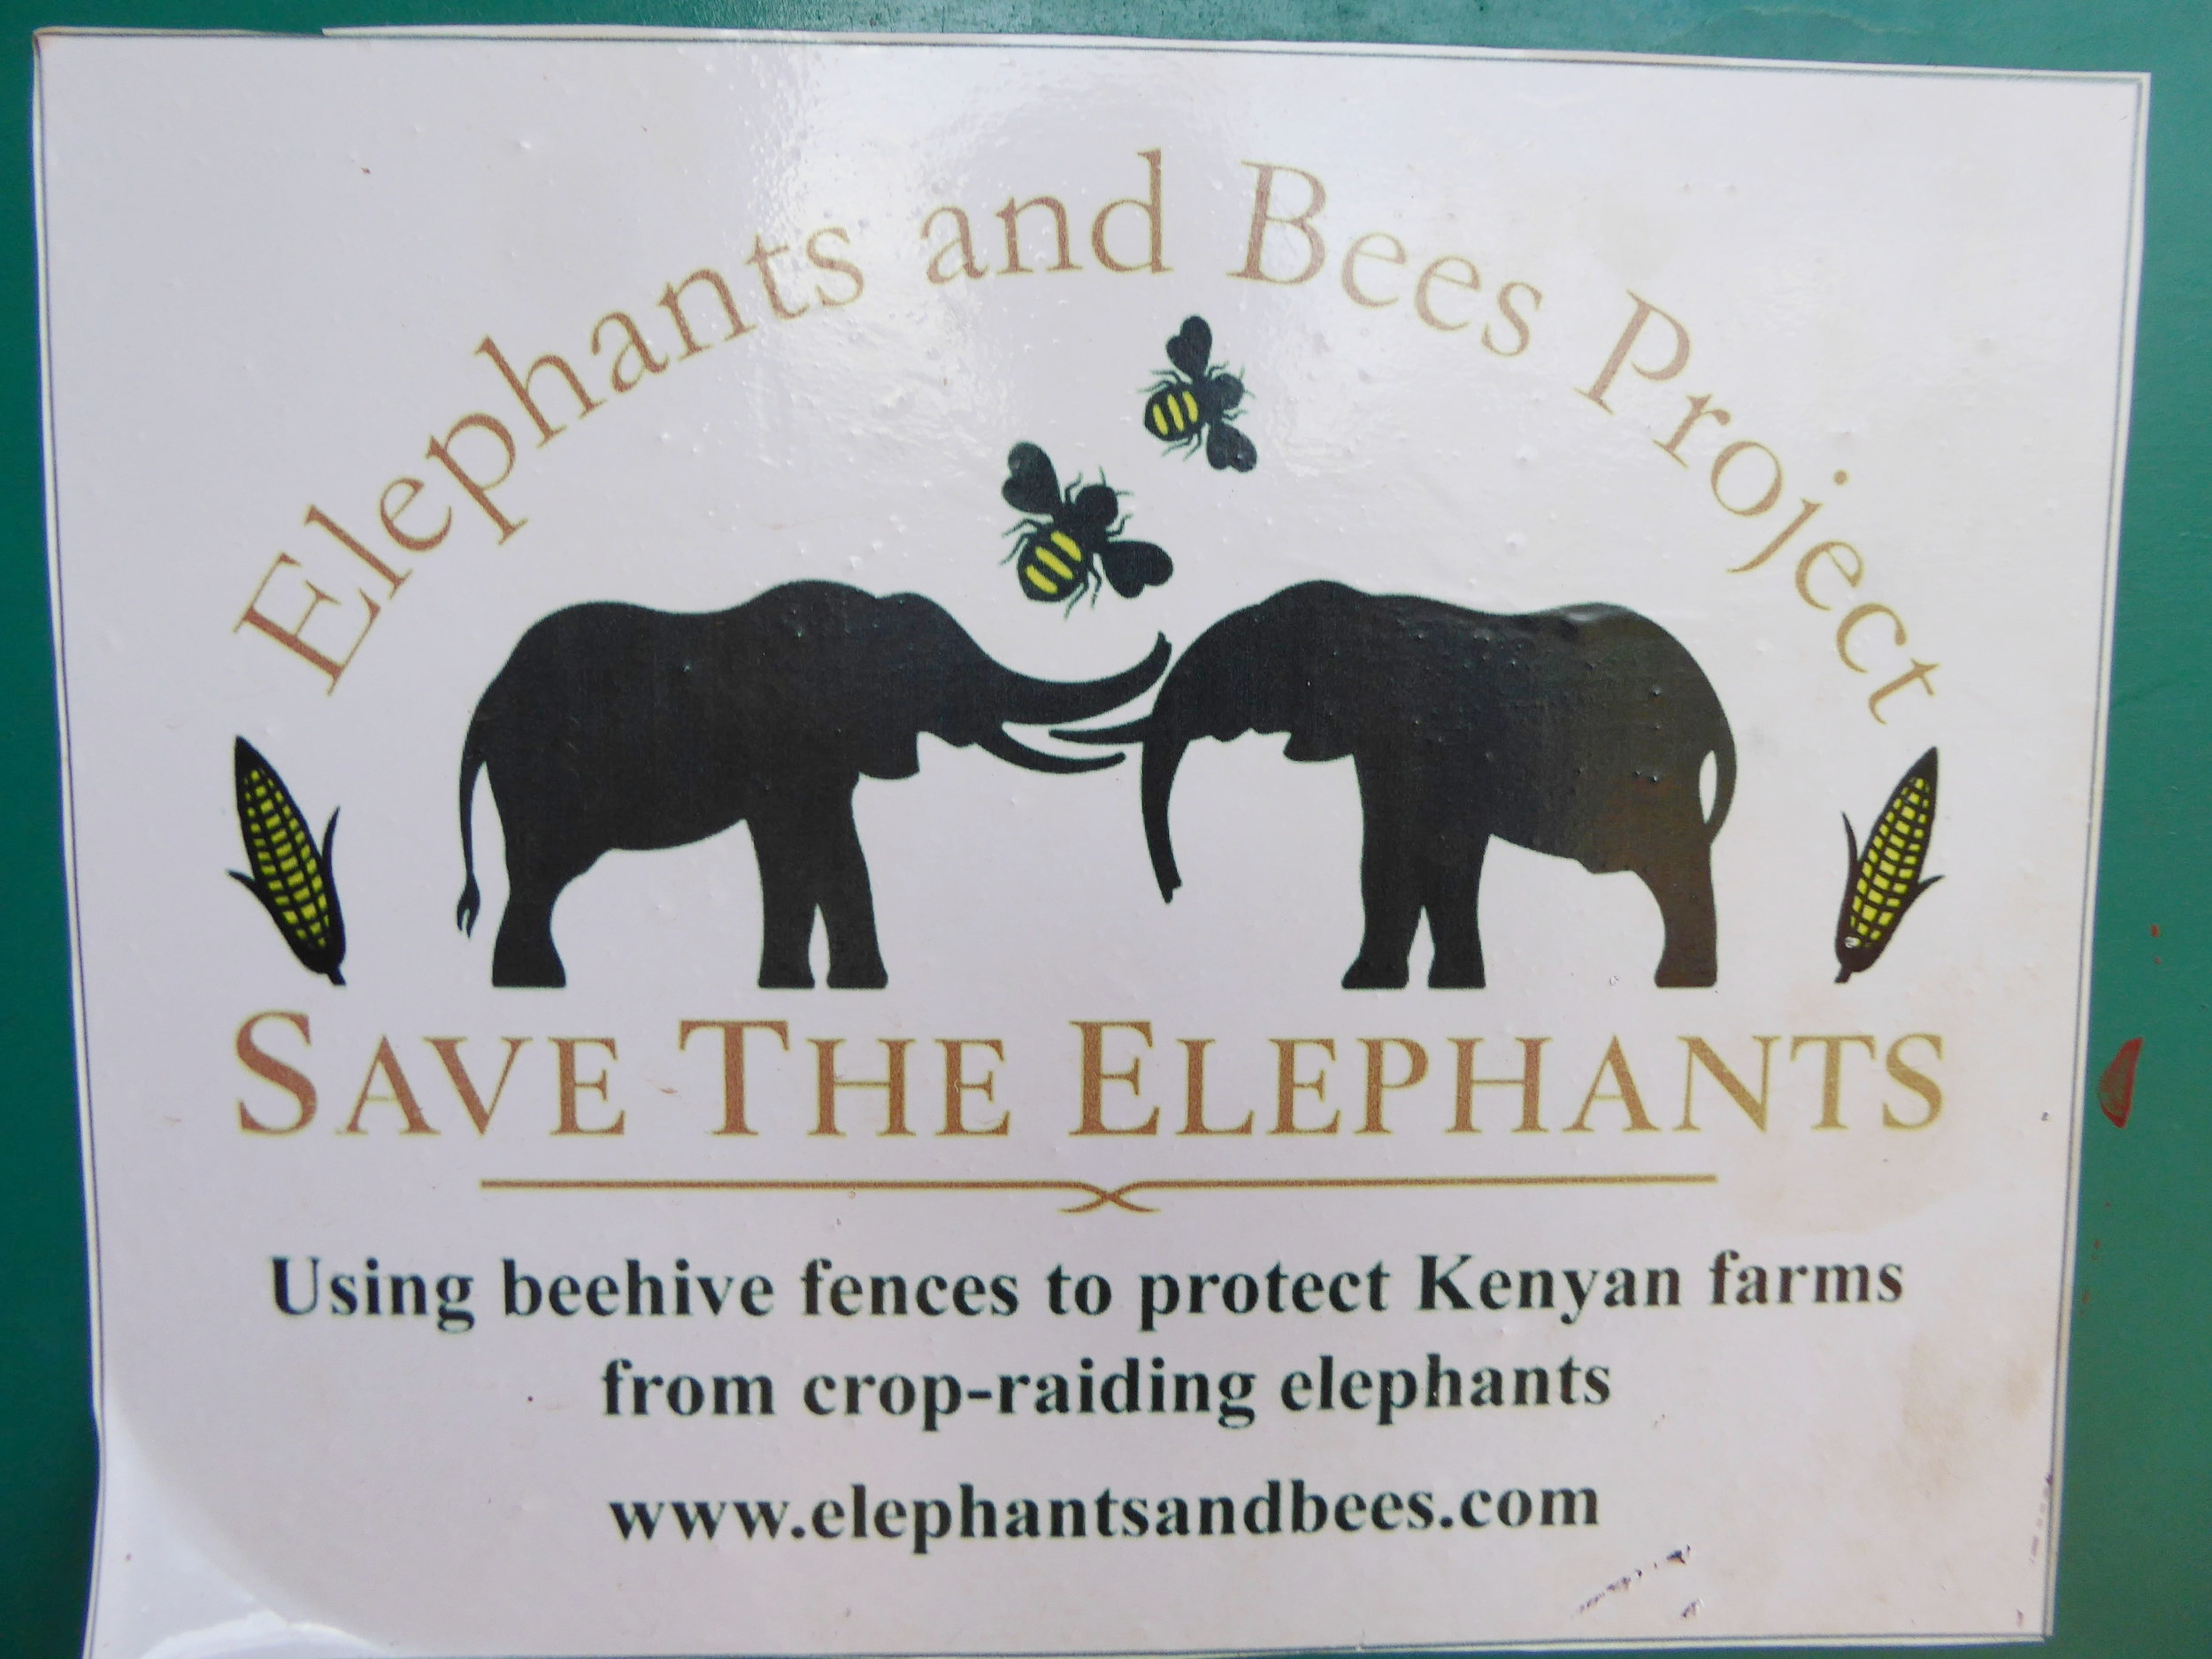 Elephants and Bees Project